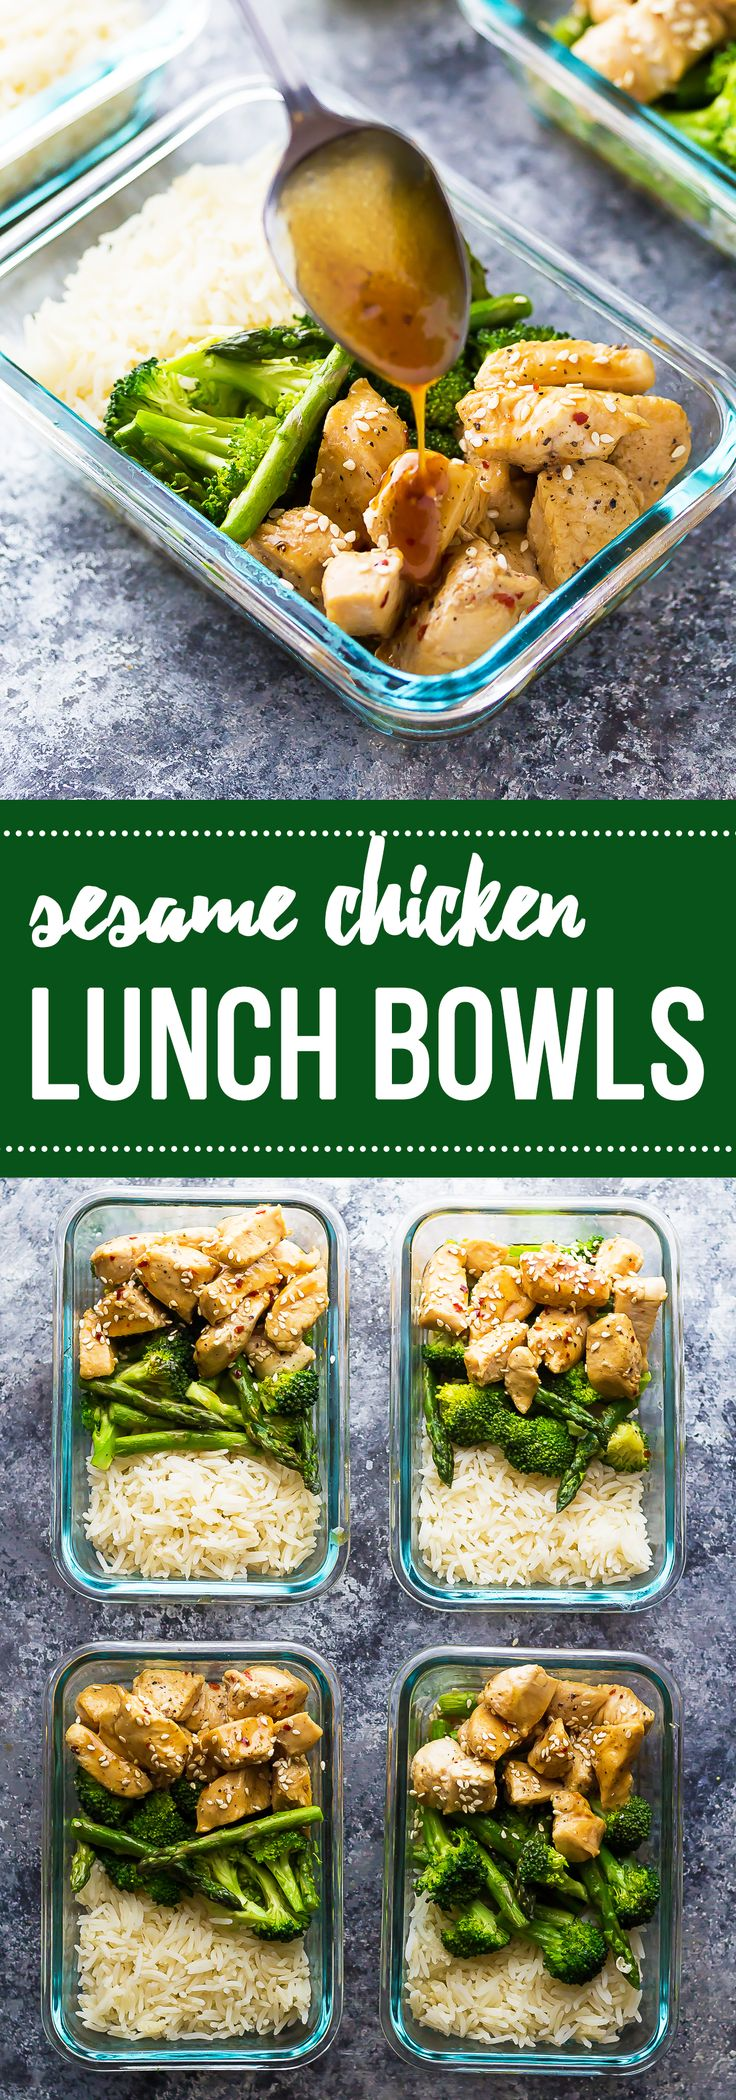 SESAME CHICKEN LUNCH BOWLS // LUNCH